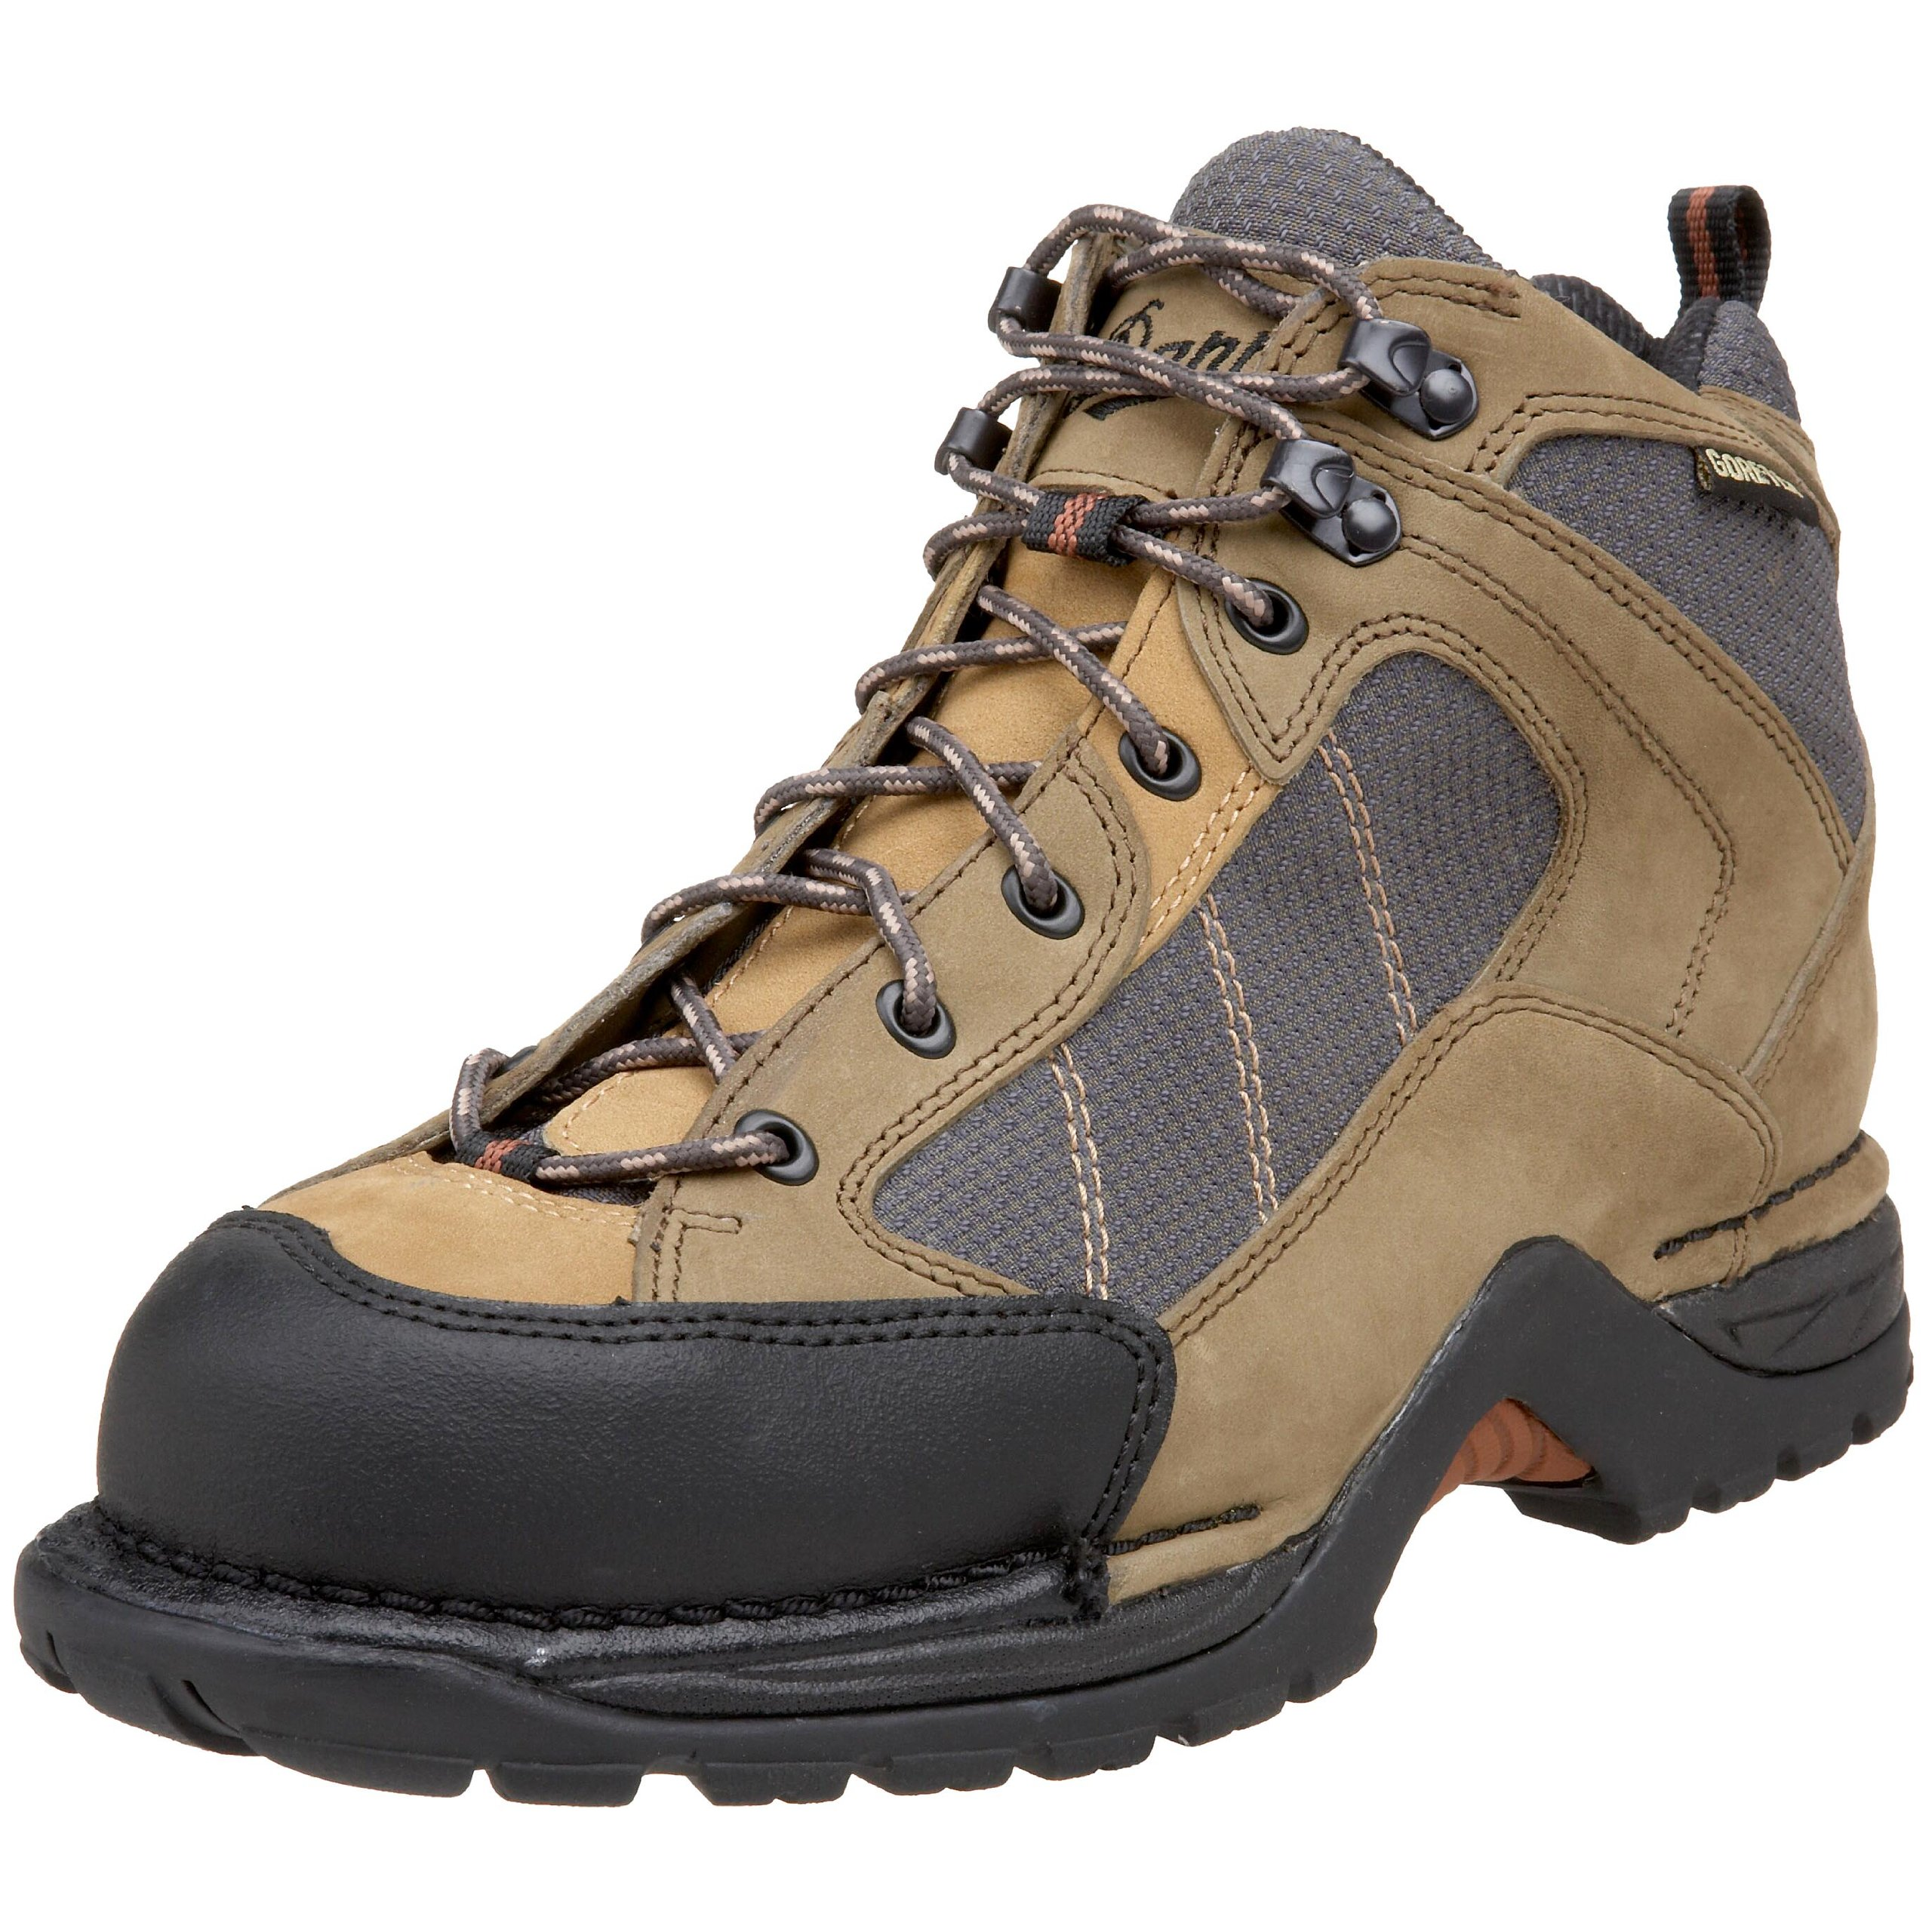 dd6a085d02c Galleon - Danner Men's Radical 452 GTX Coffee Outdoor Boot,Coffee,11 ...